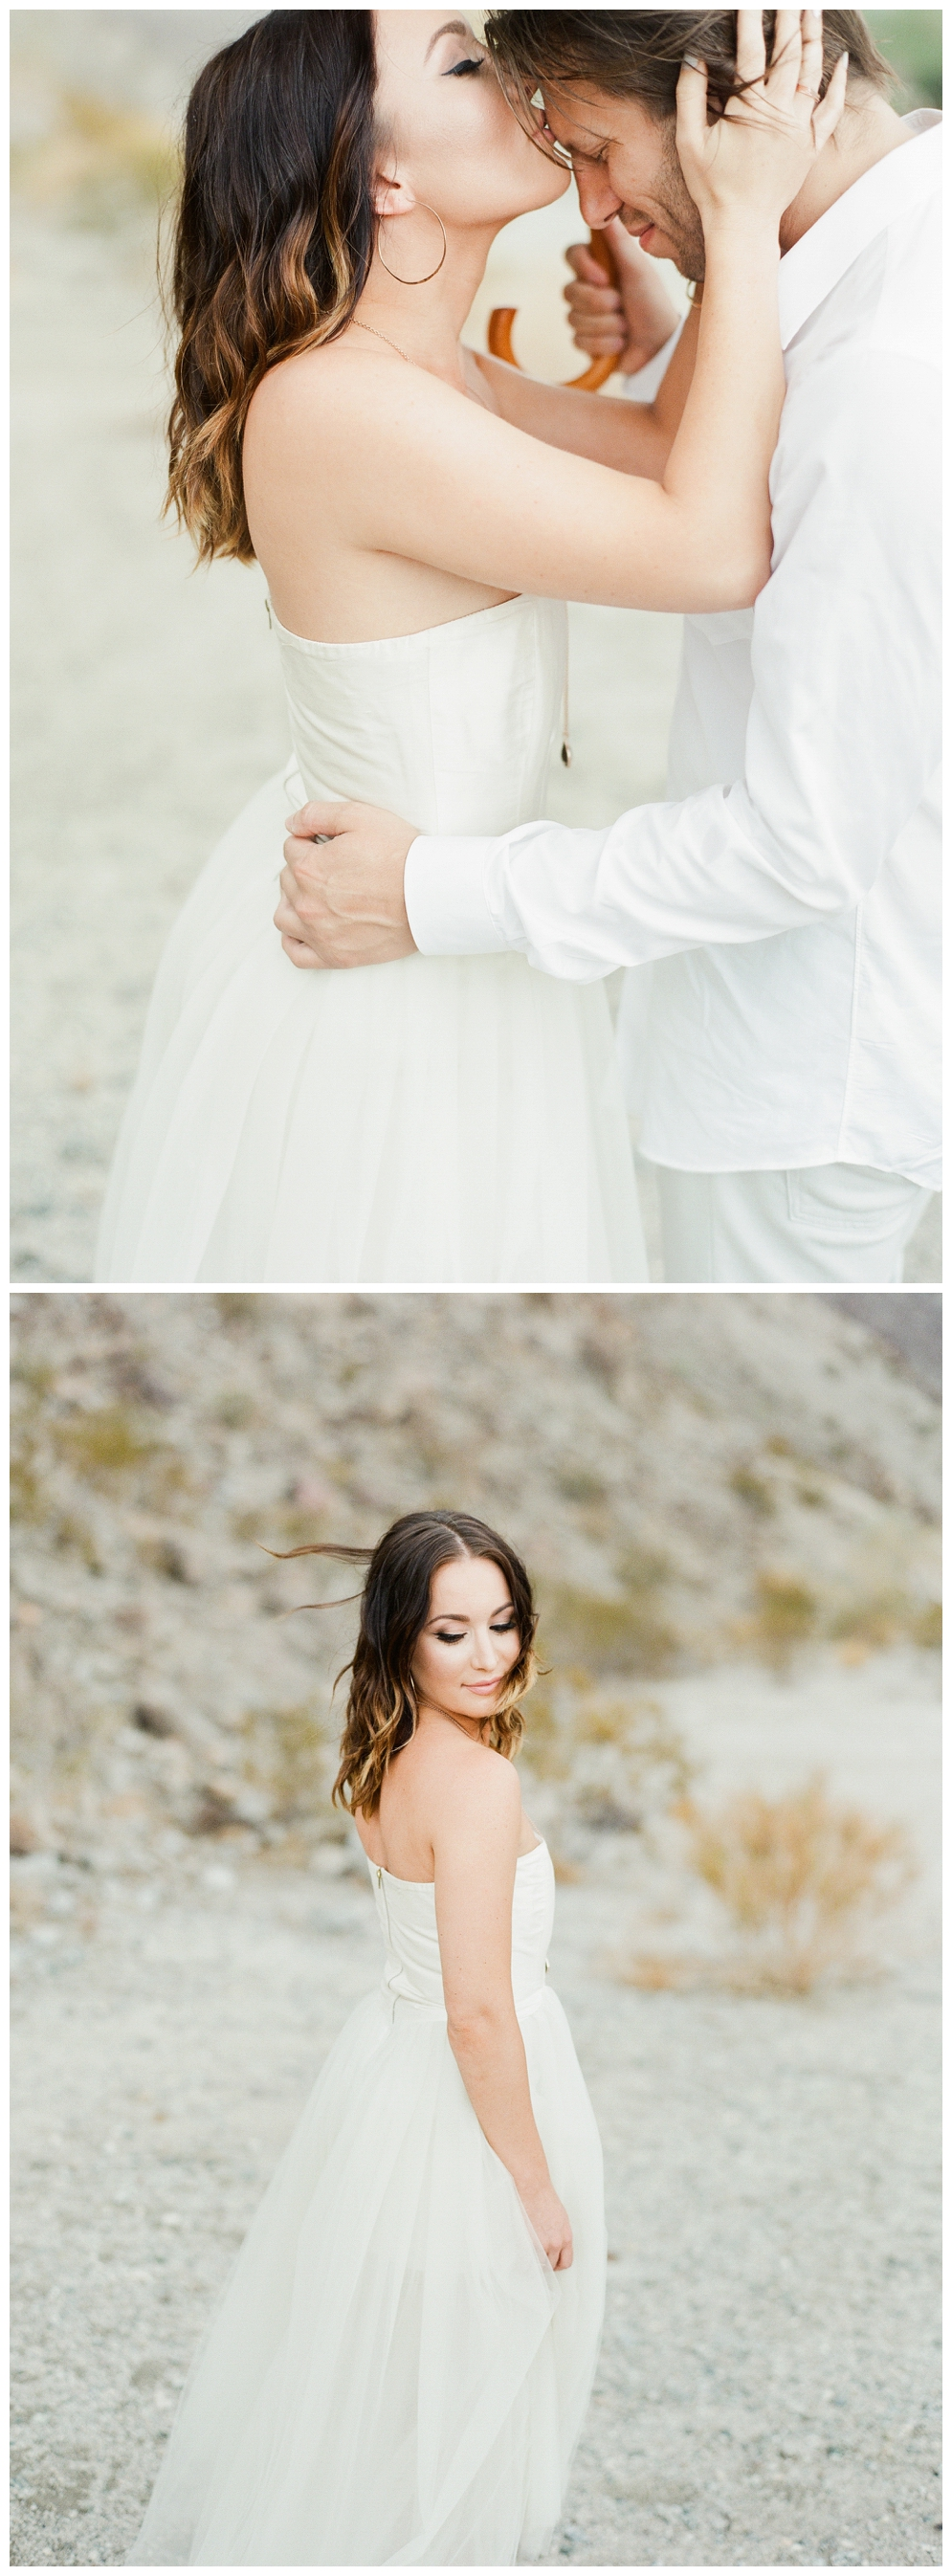 PALM_SPRINGS_ENGAGEMENT_SESSION_0018.jpg